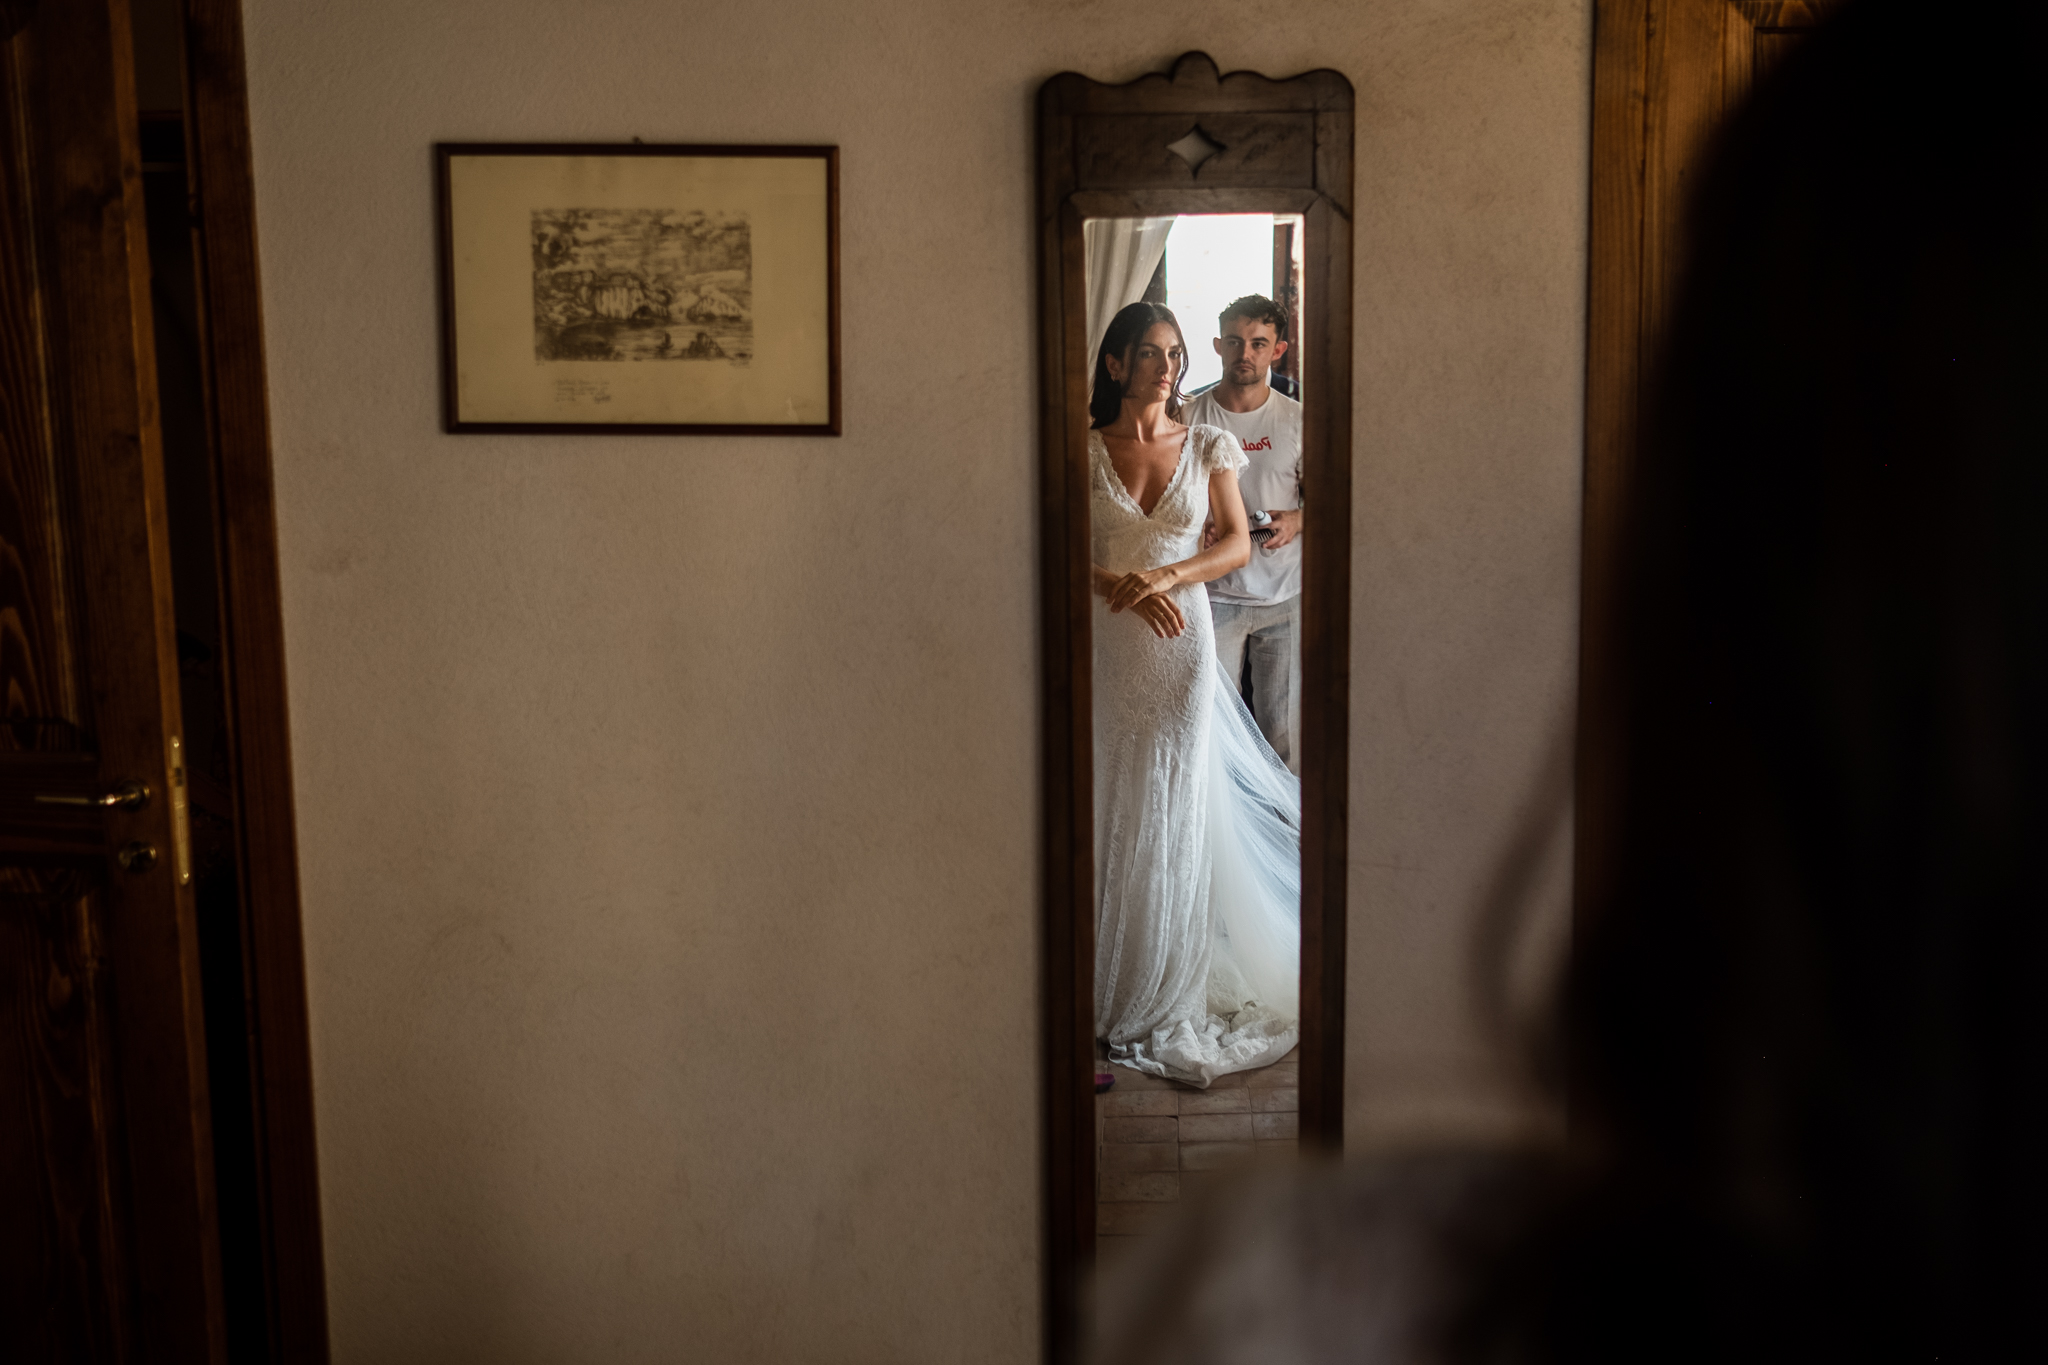 wedding-photography-in-italy-11.jpg